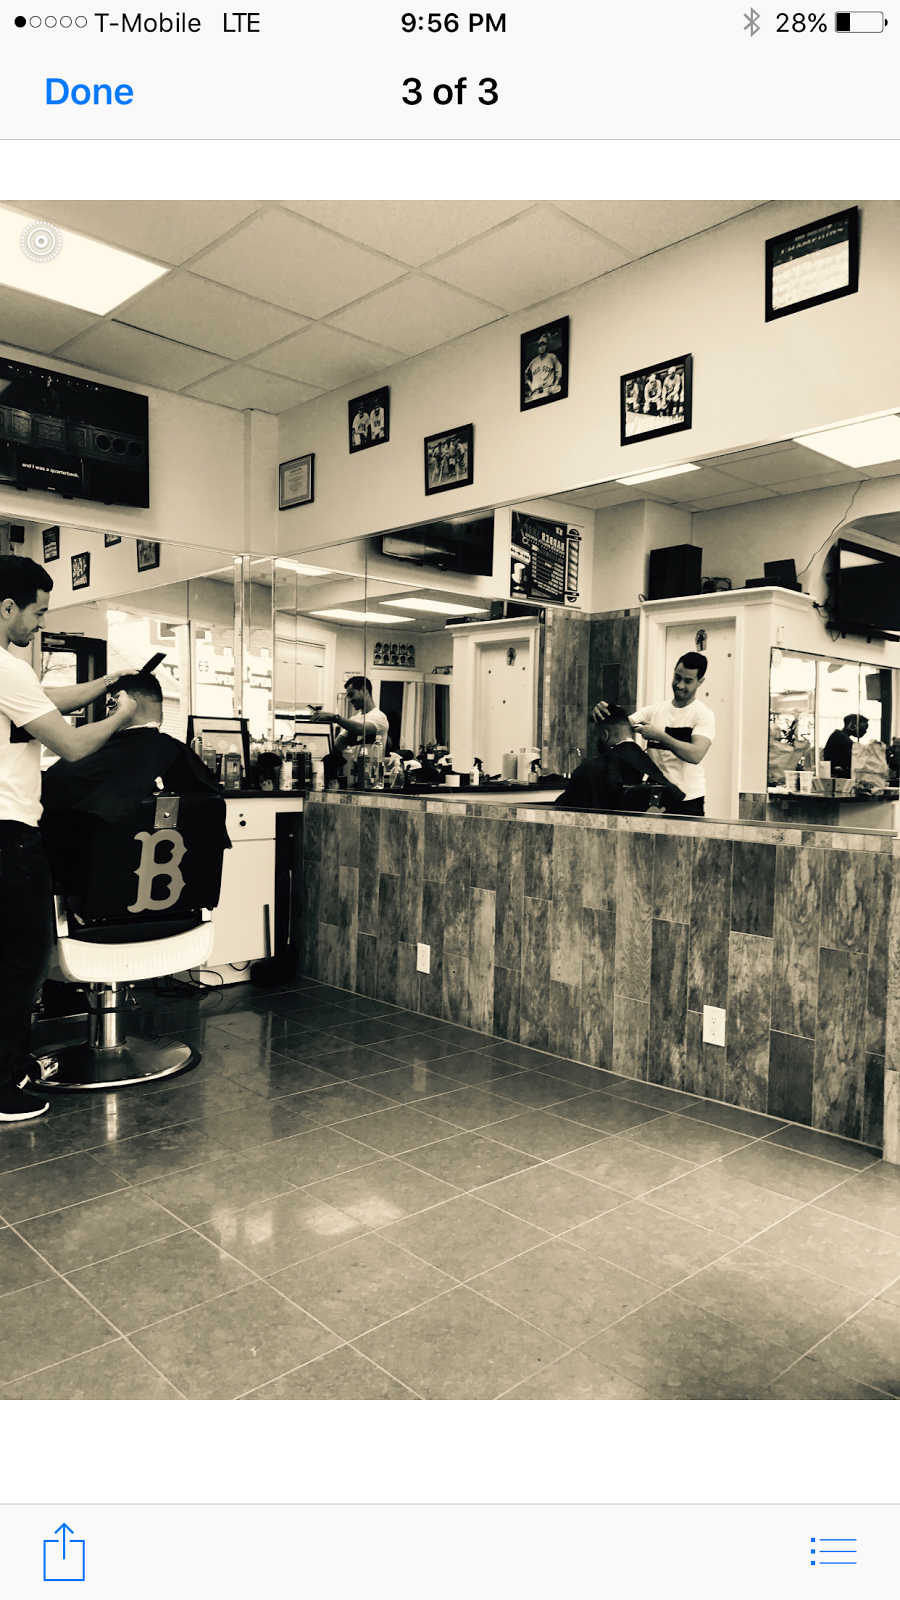 Shears & Beards Barber Shop - hair care    Photo 7 of 10   Address: 126-9 15th Ave, College Point, NY 11356, USA   Phone: (718) 353-3696